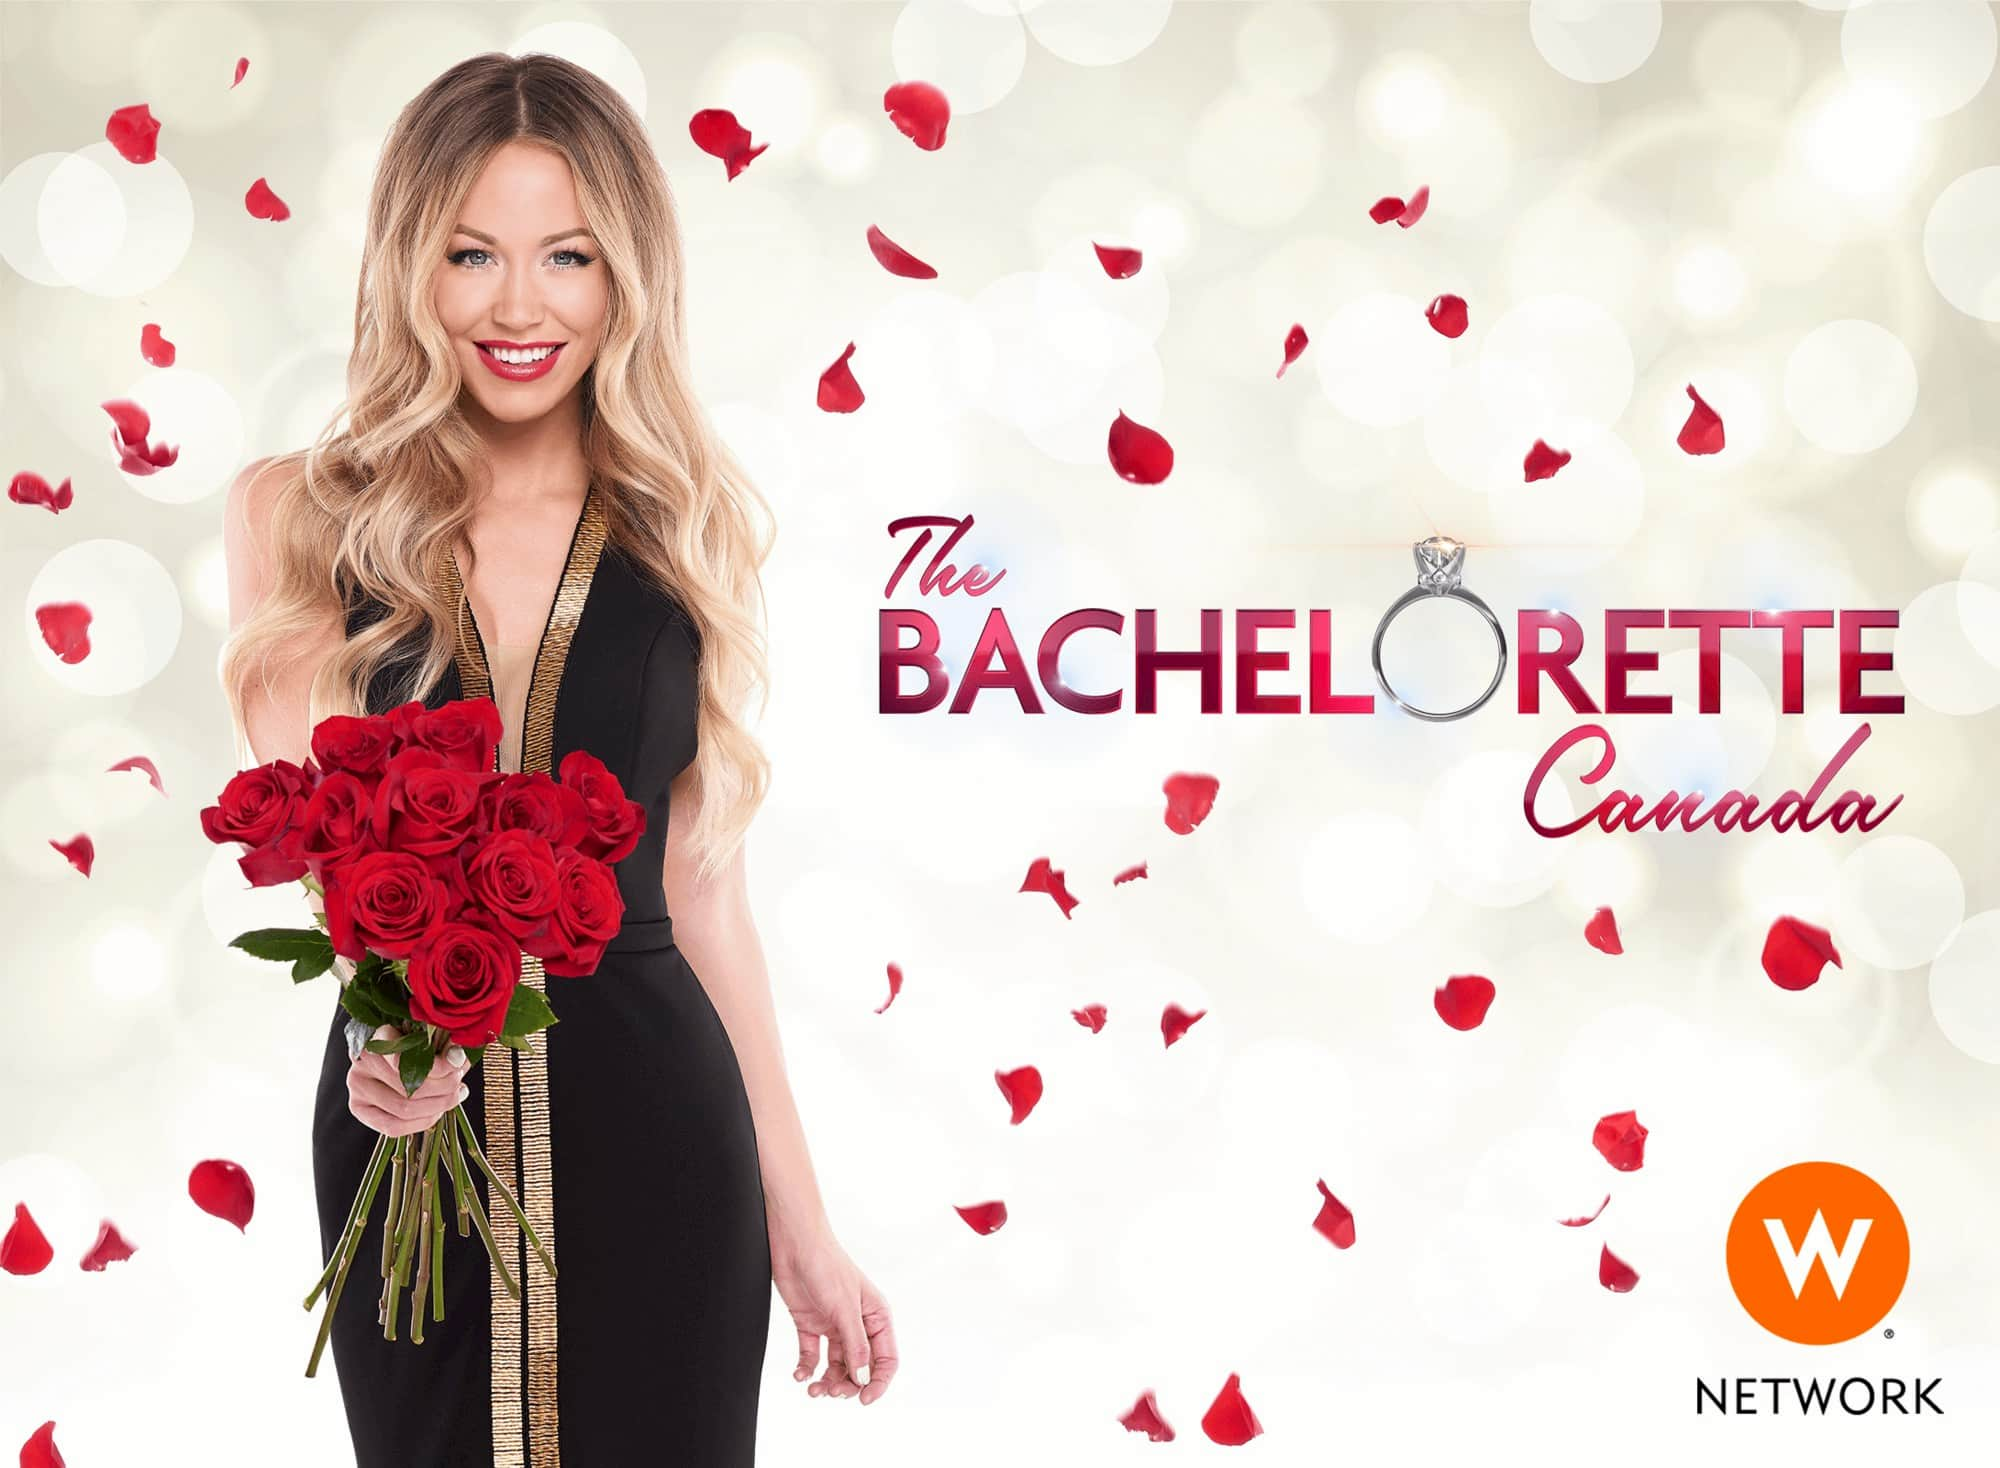 image from The Bachelorette Canada